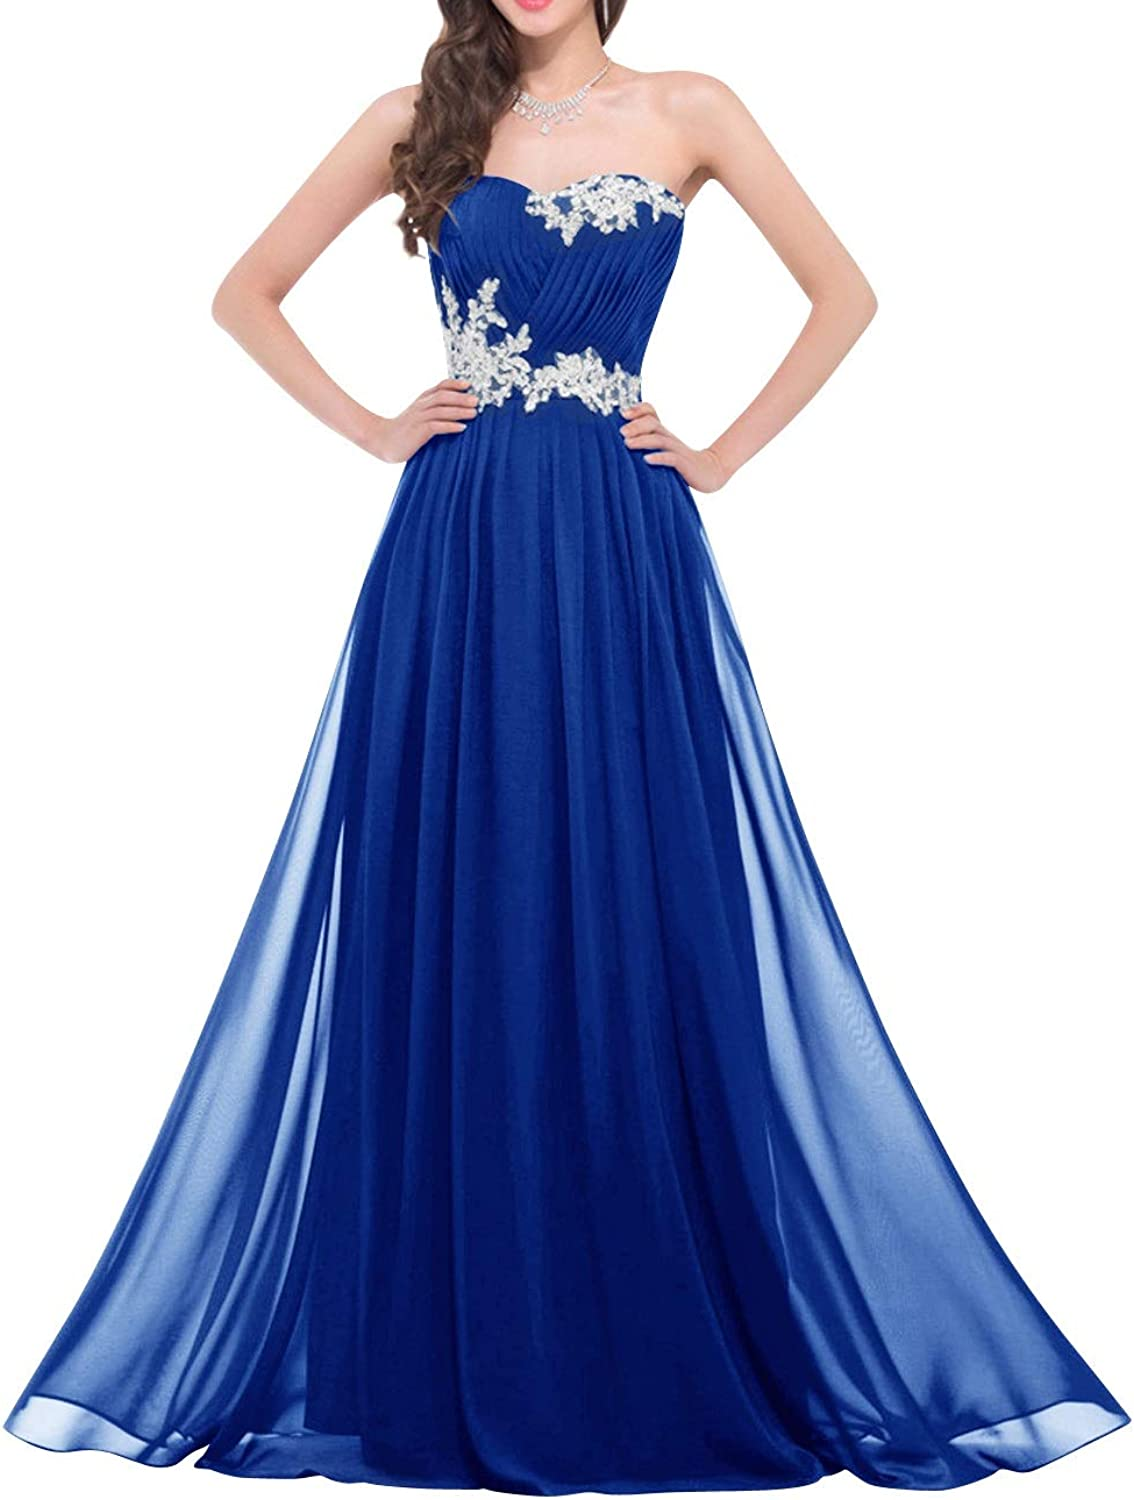 Bess Bridal Women's Lace up Sweetheart Long Prom Evening Dress with Appliques